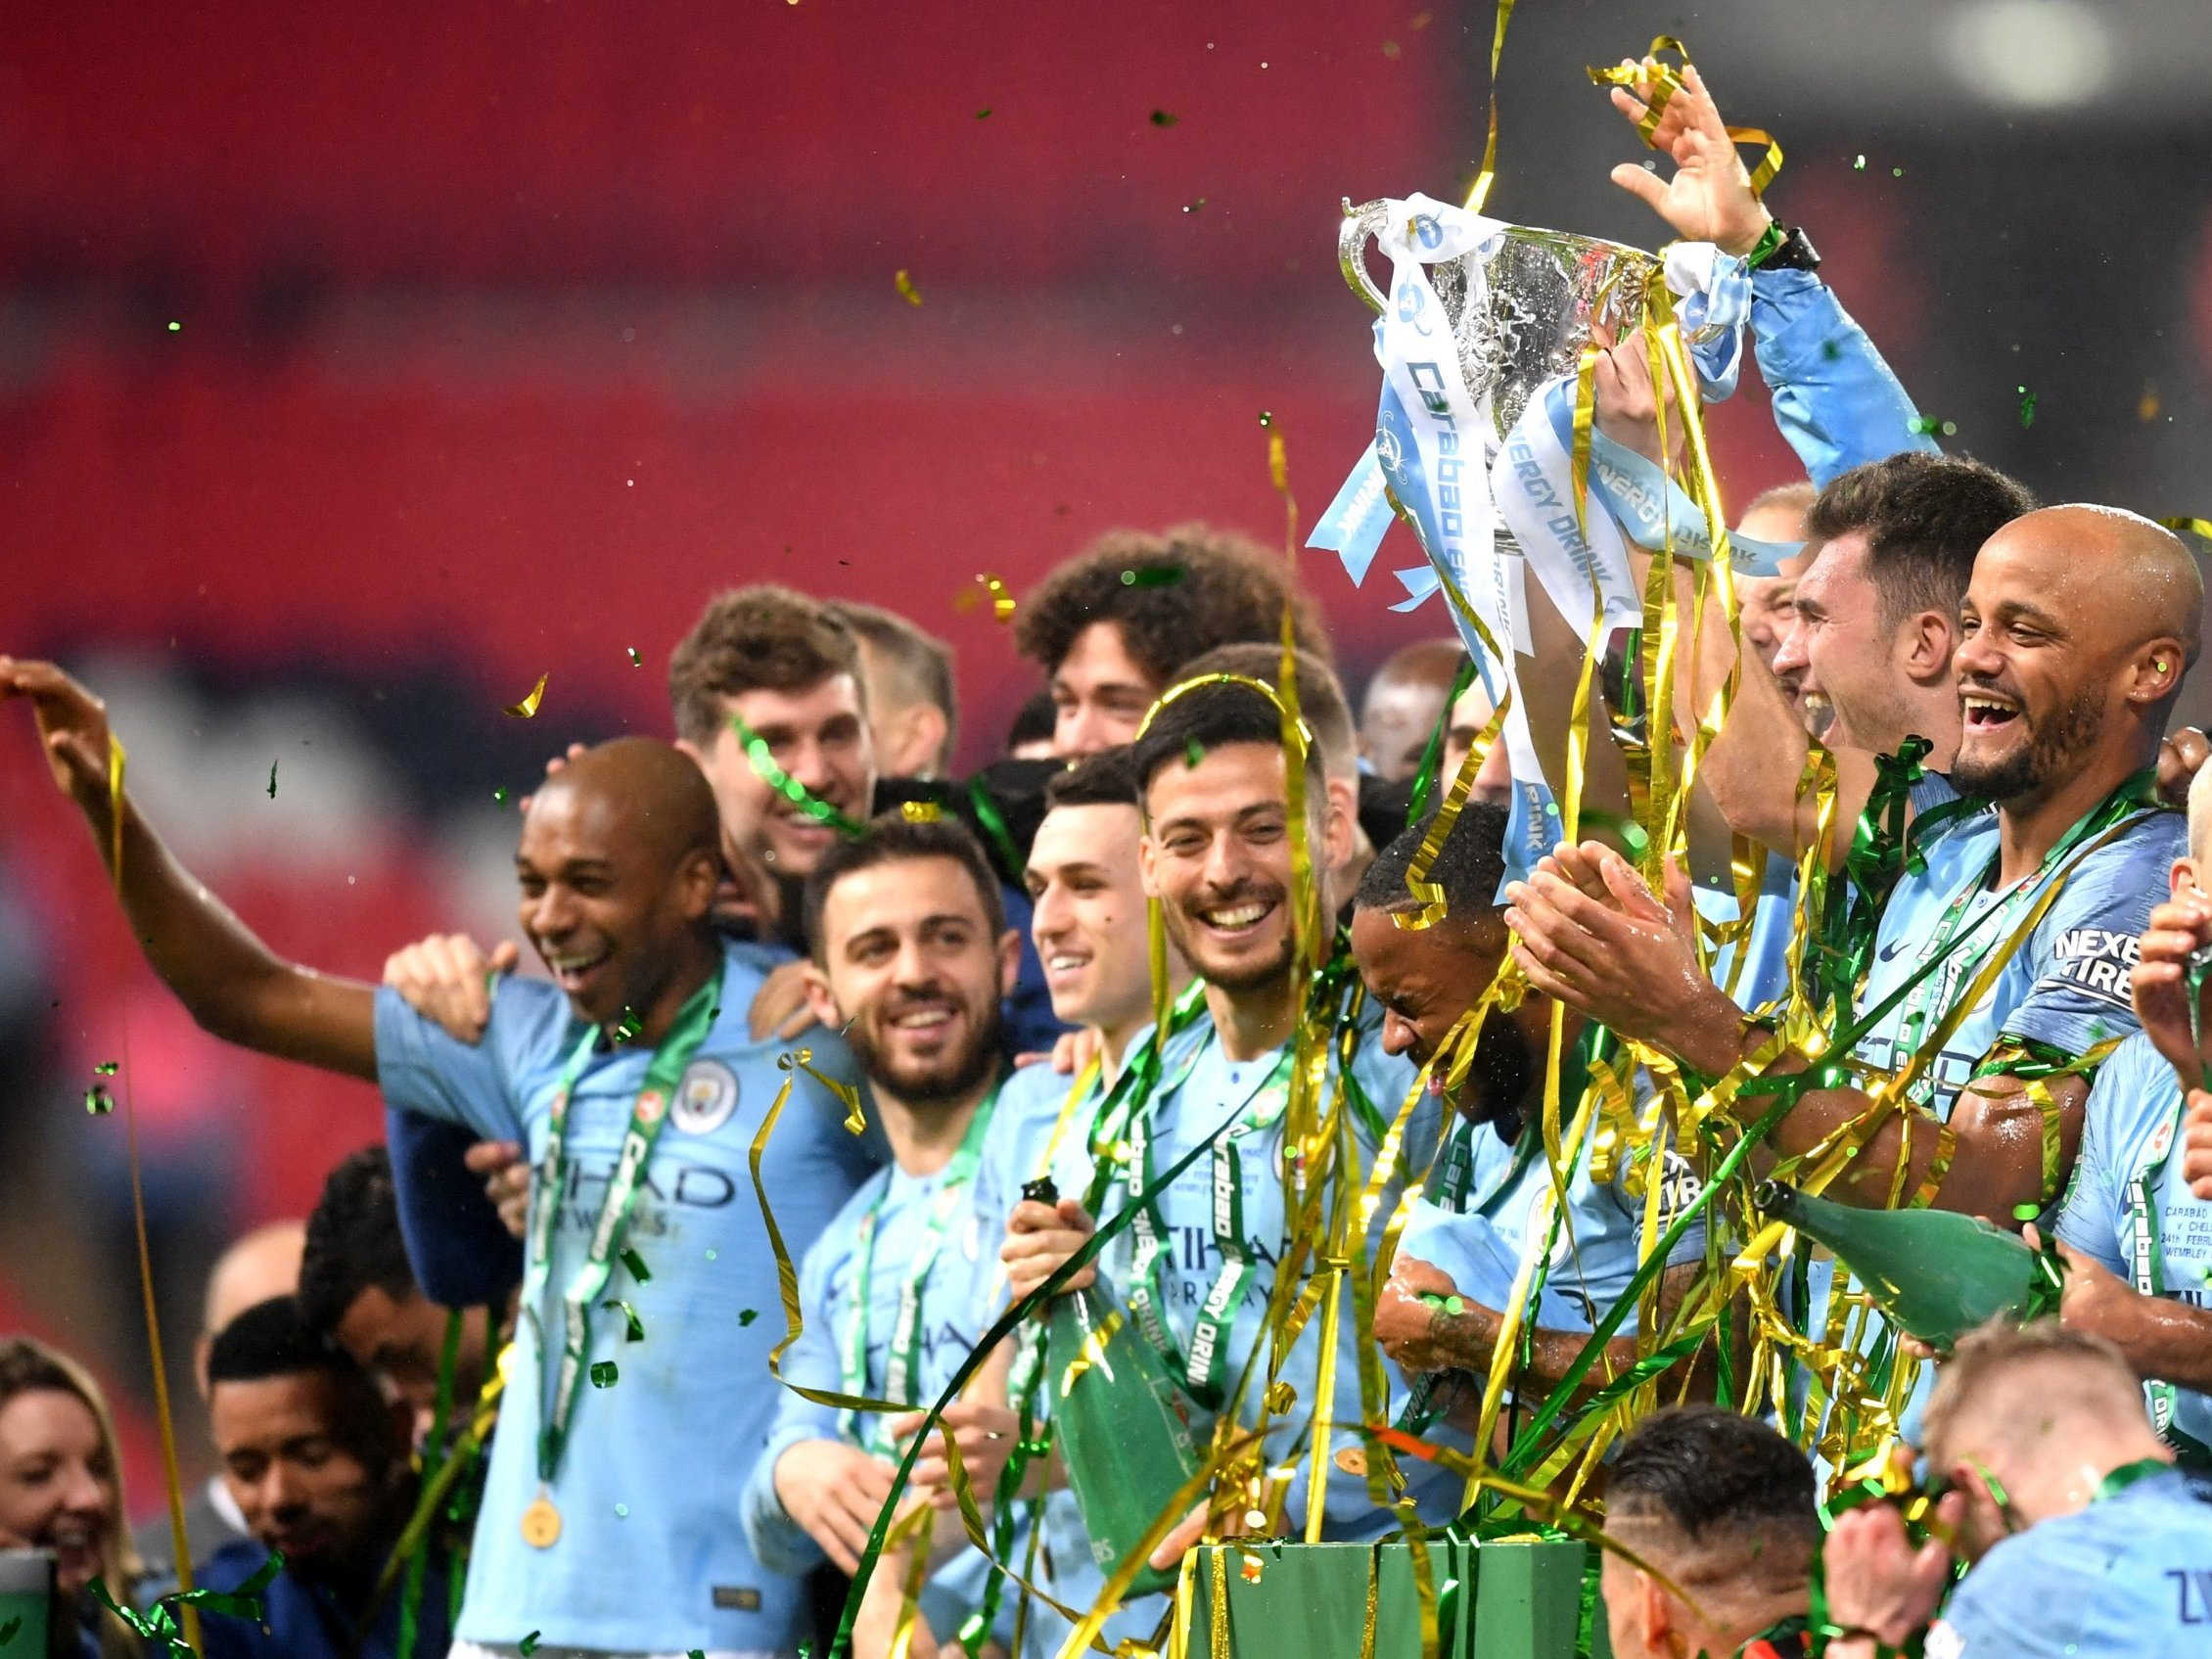 Manchester City Defeats Chelsea on penalties to lift the Carabao Cup. Watch Highlight